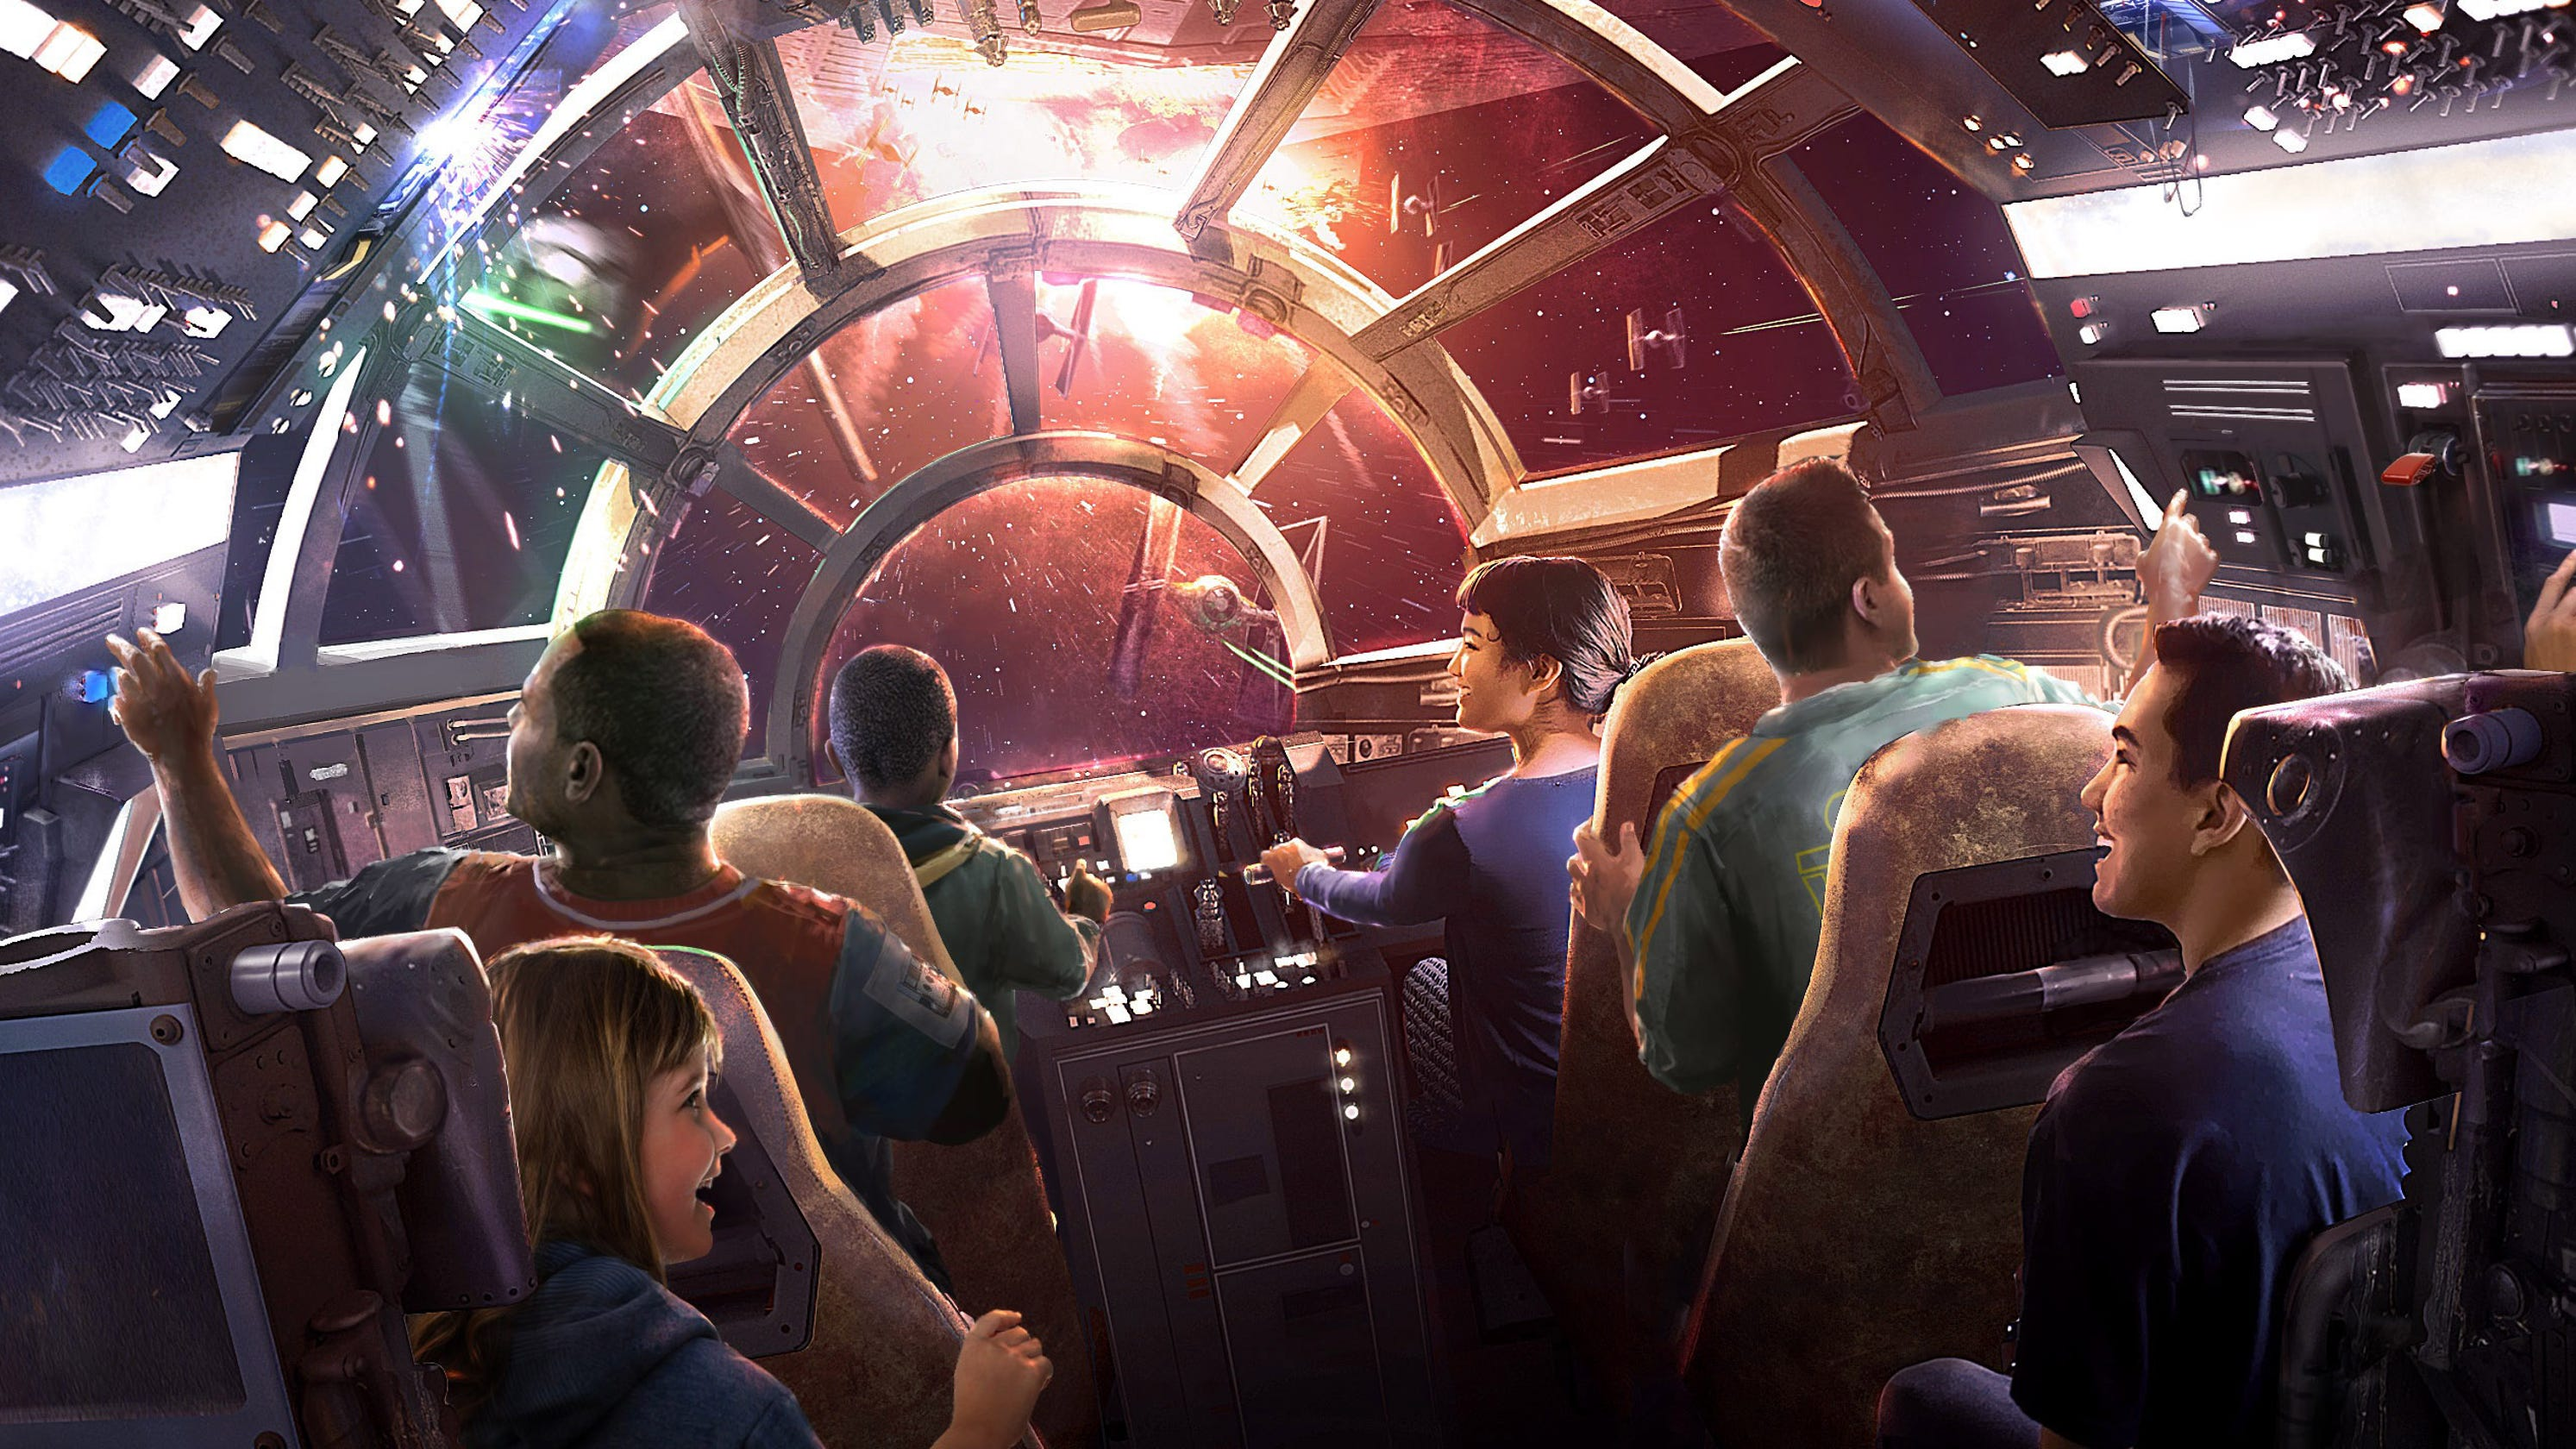 Disney World 2019 preview: Star Wars: Galaxy's Edge and much